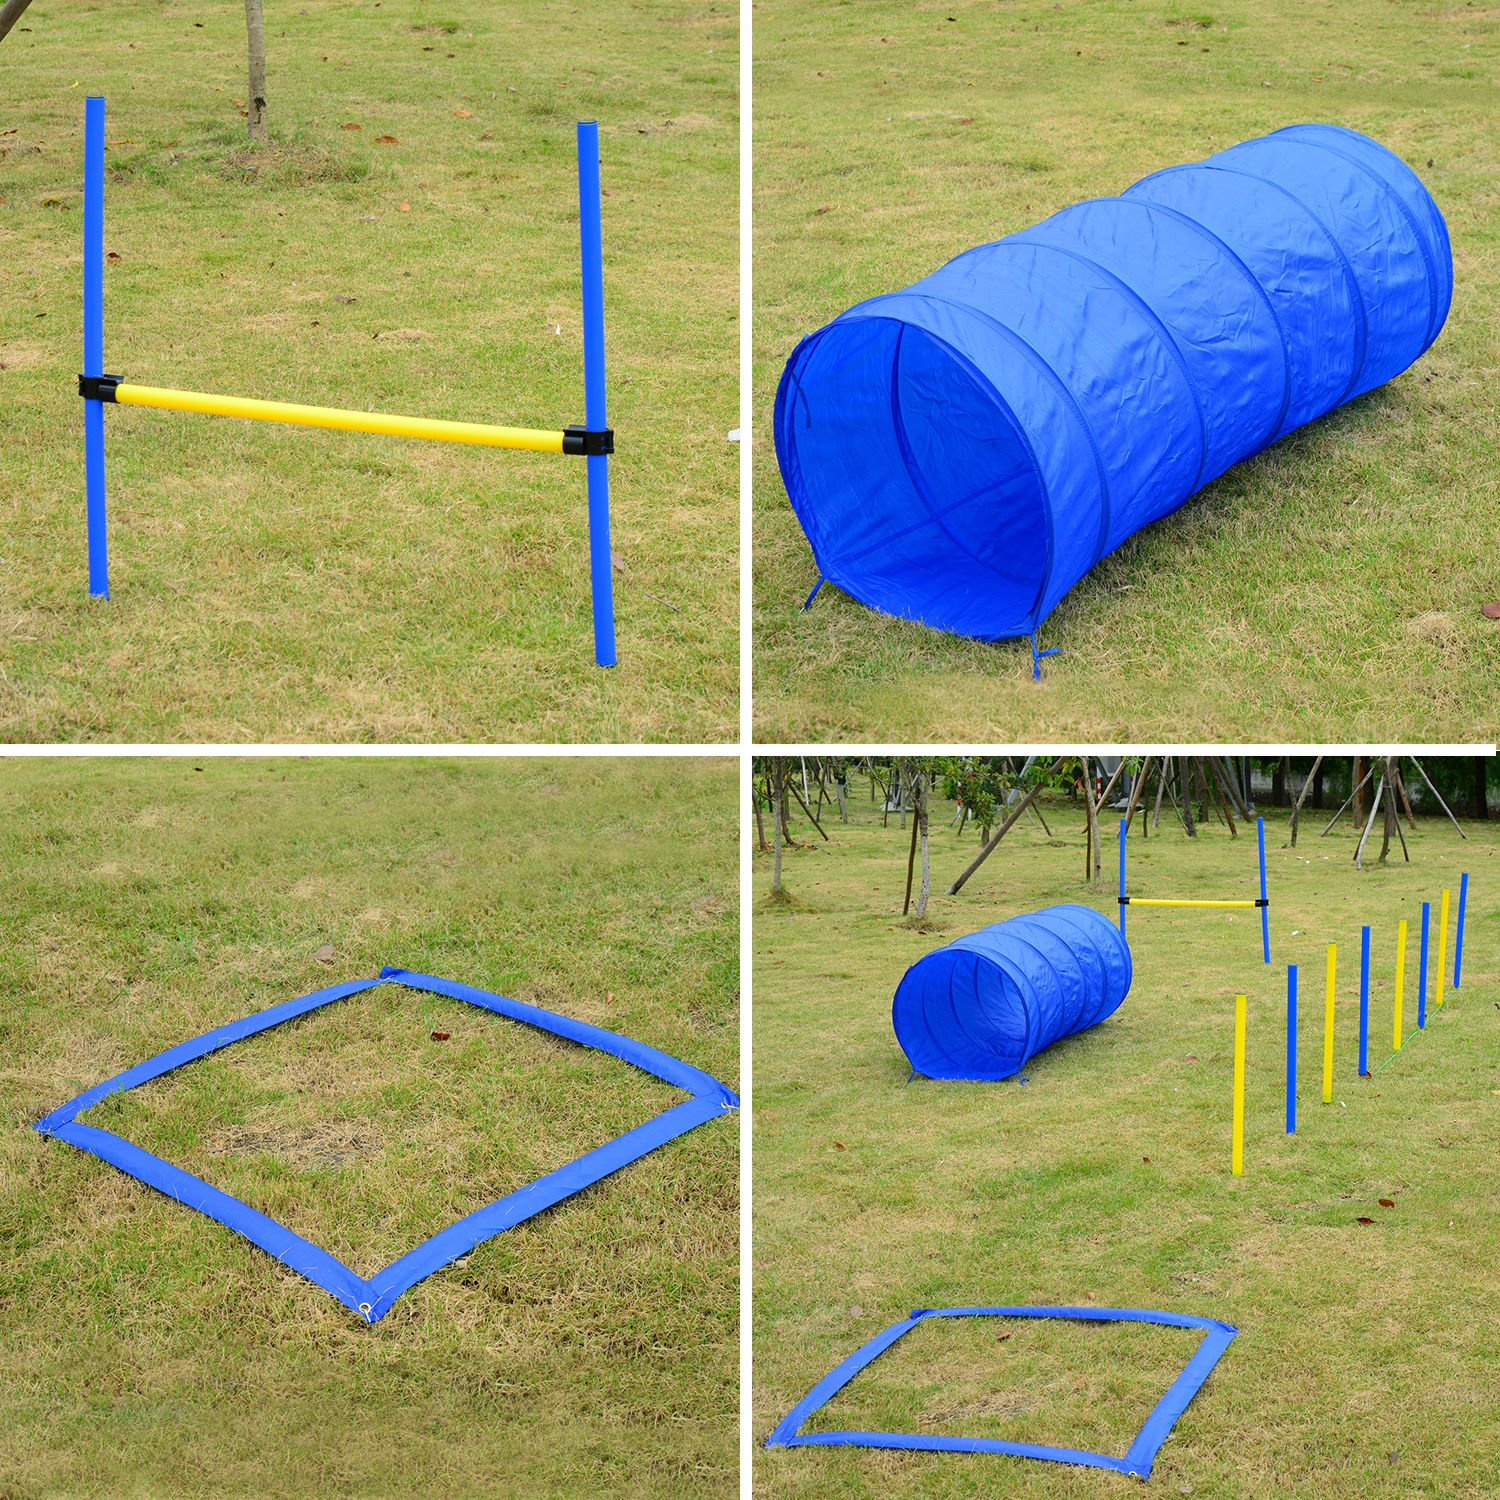 PawHut 4PC Obstacle Dog Agility Training Course Kit